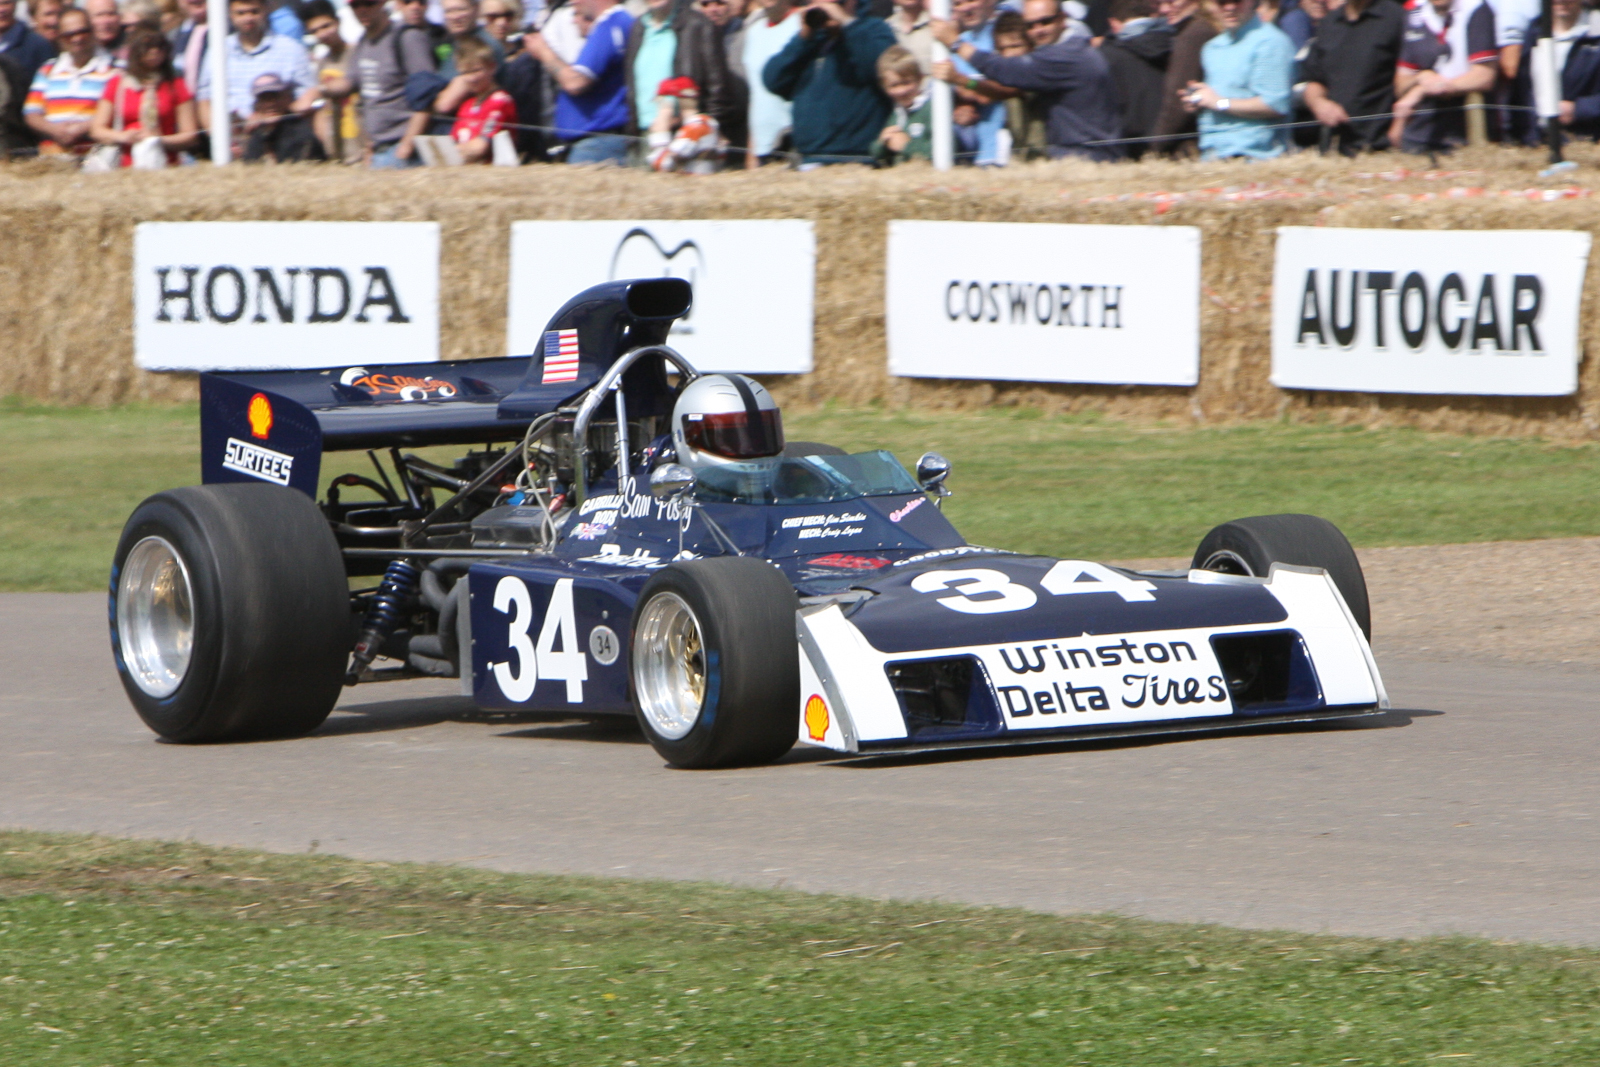 20080711 - Goodwood Festival of Speed -080711 -012